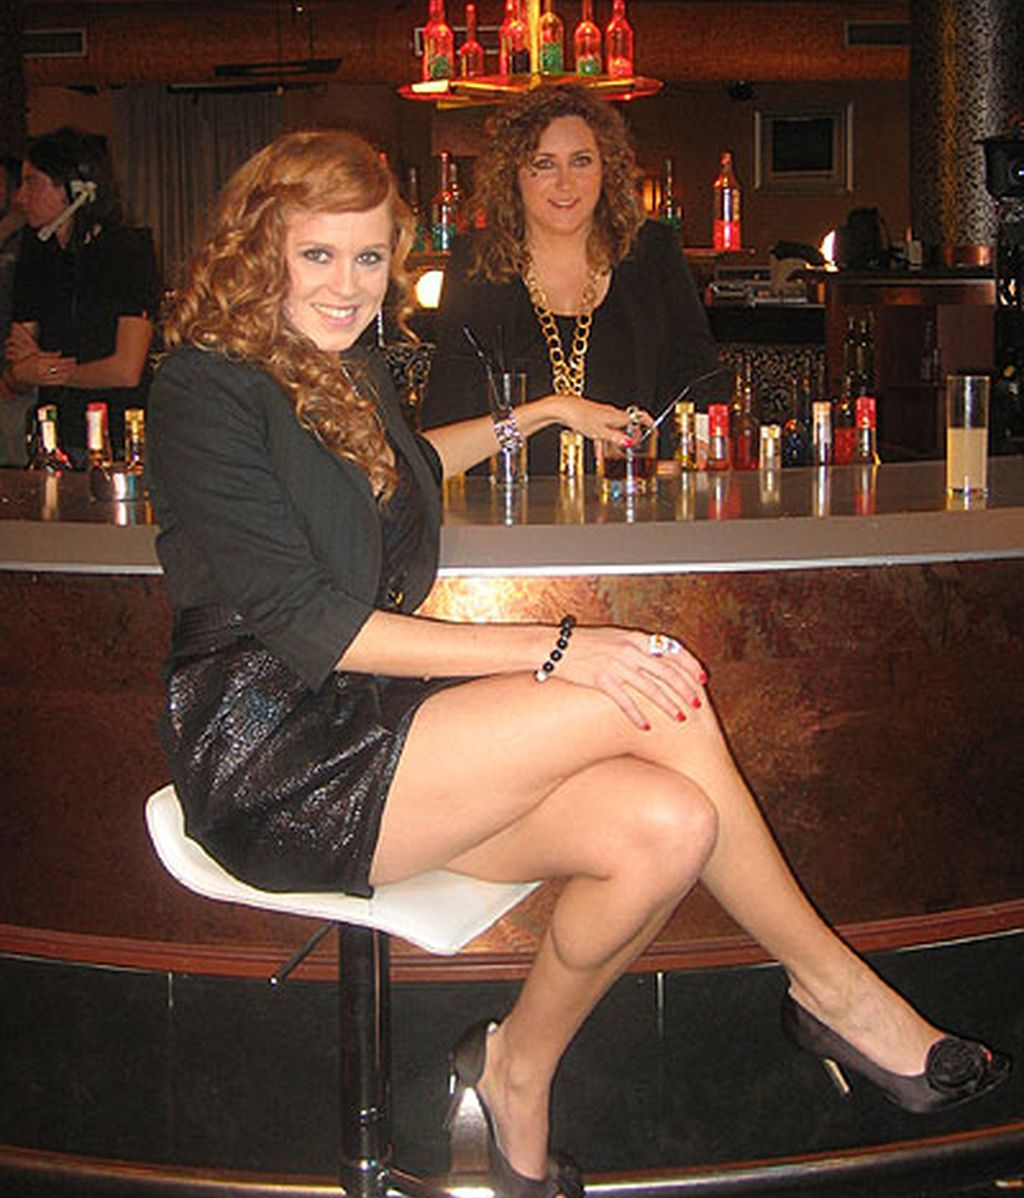 Una chica Ginger